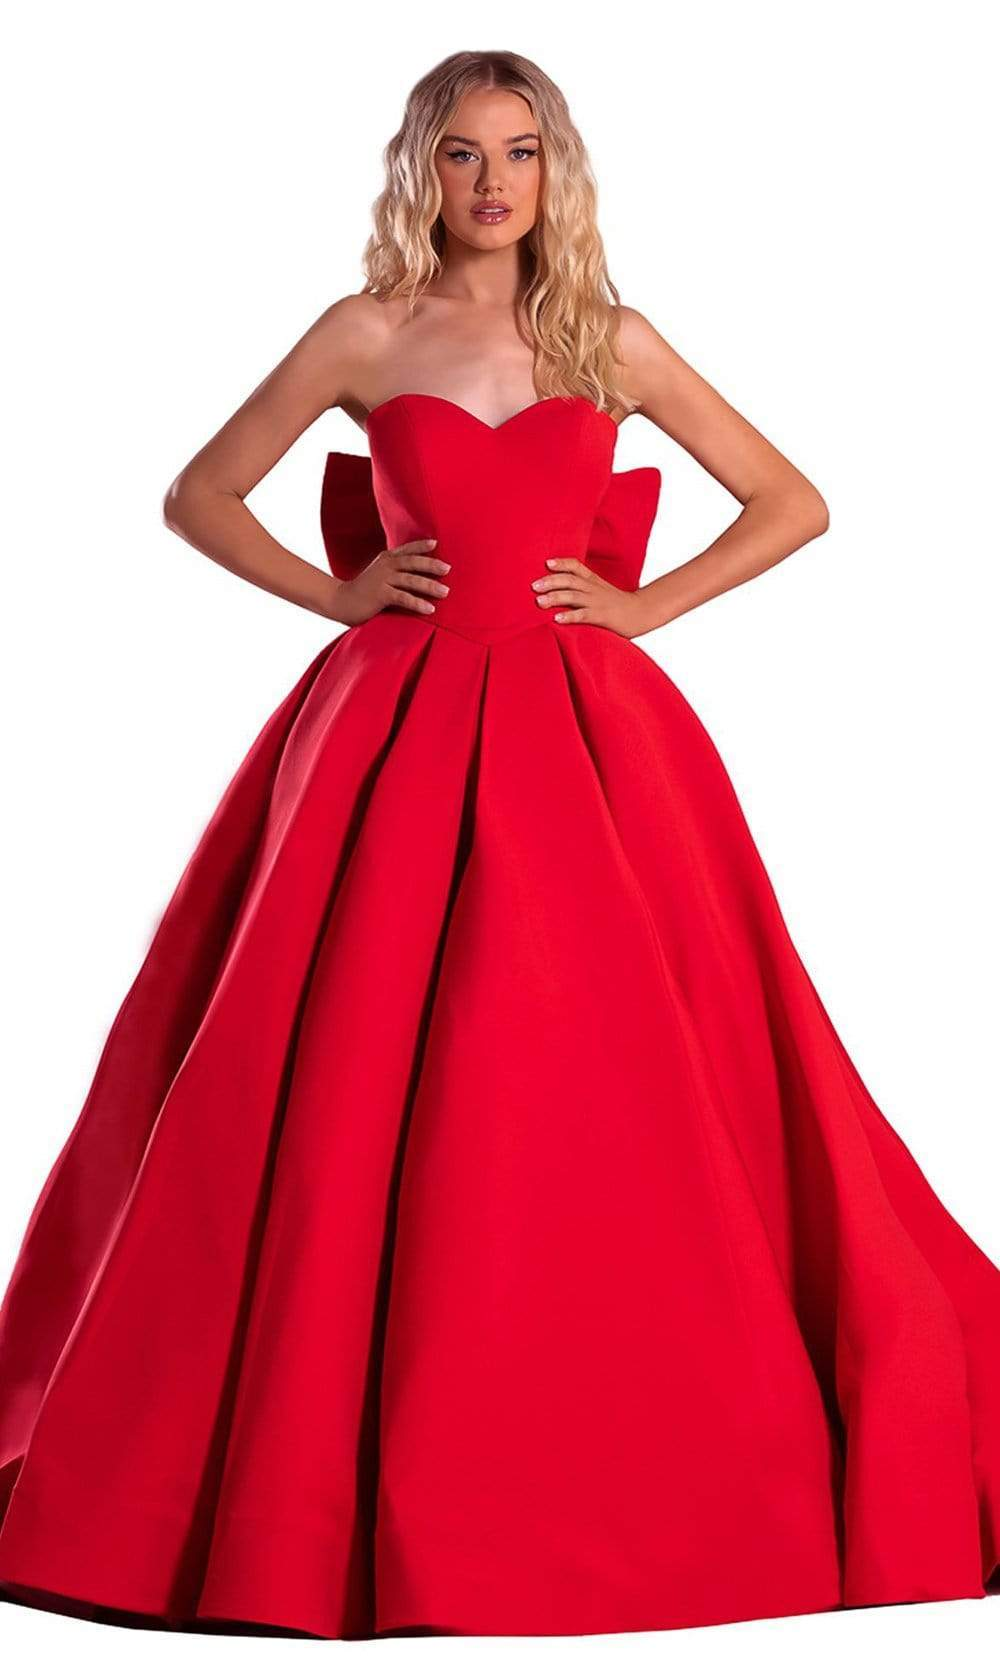 Portia and Scarlett - PS21003 Strapless Bow Accented Back Ballgown from Portia and Scarlett